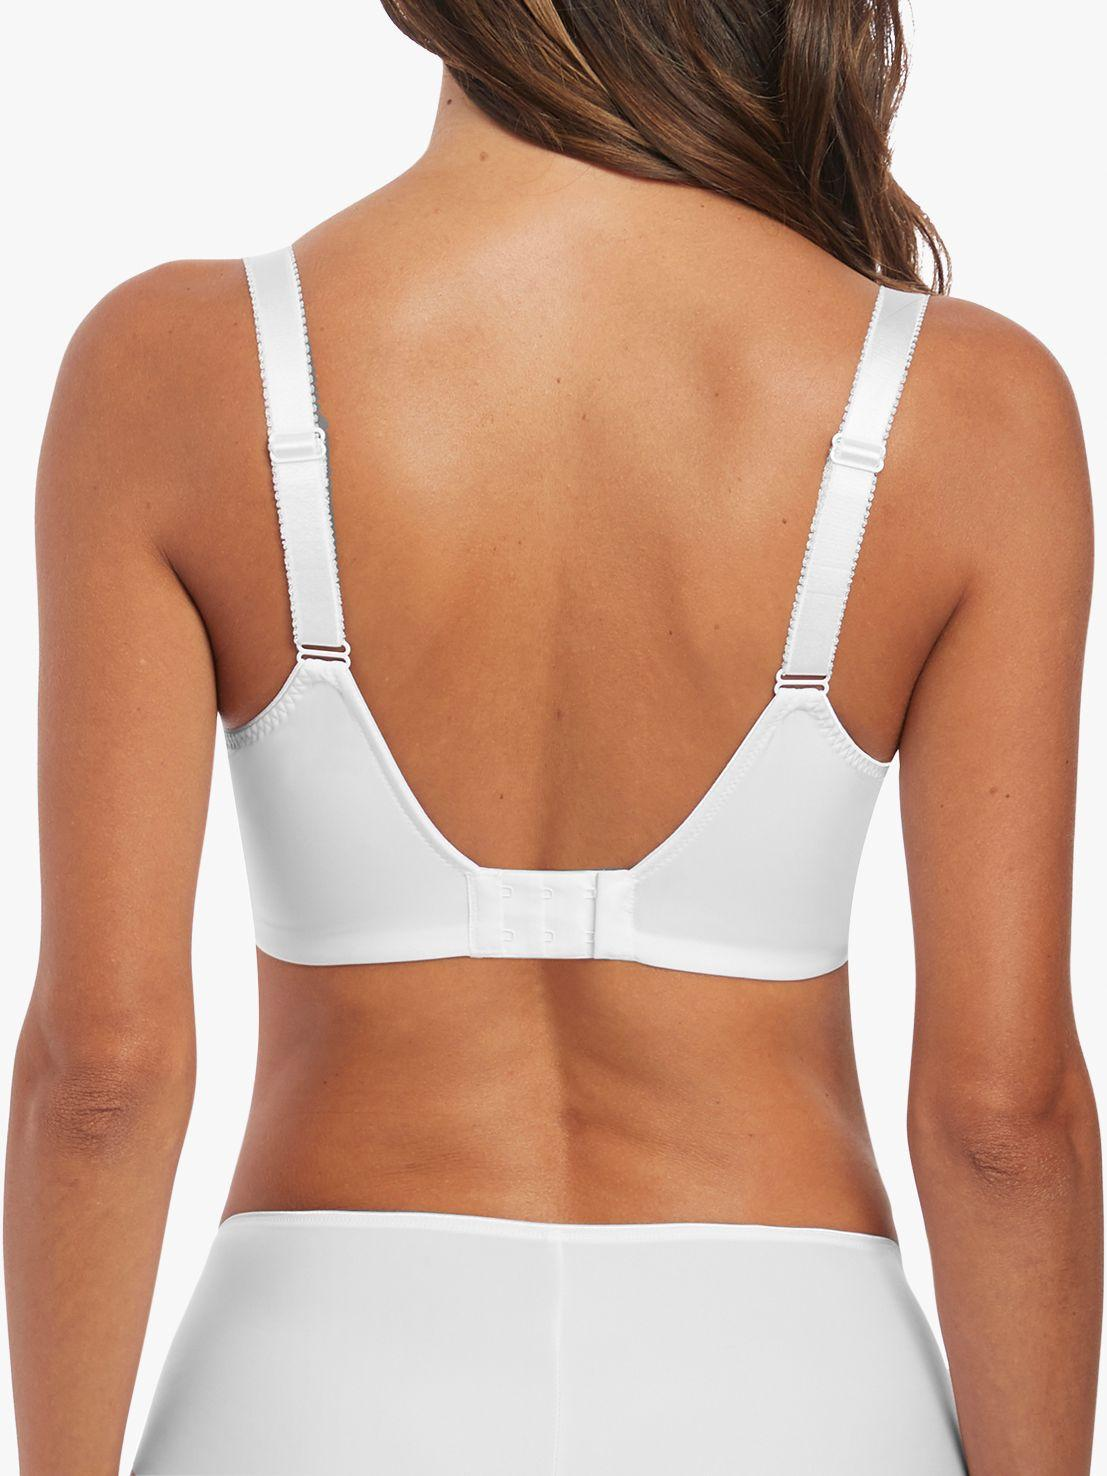 a1d41d8d45 Fantasie Illusion Underwired Side Support Balcony Bra in White - Lyst